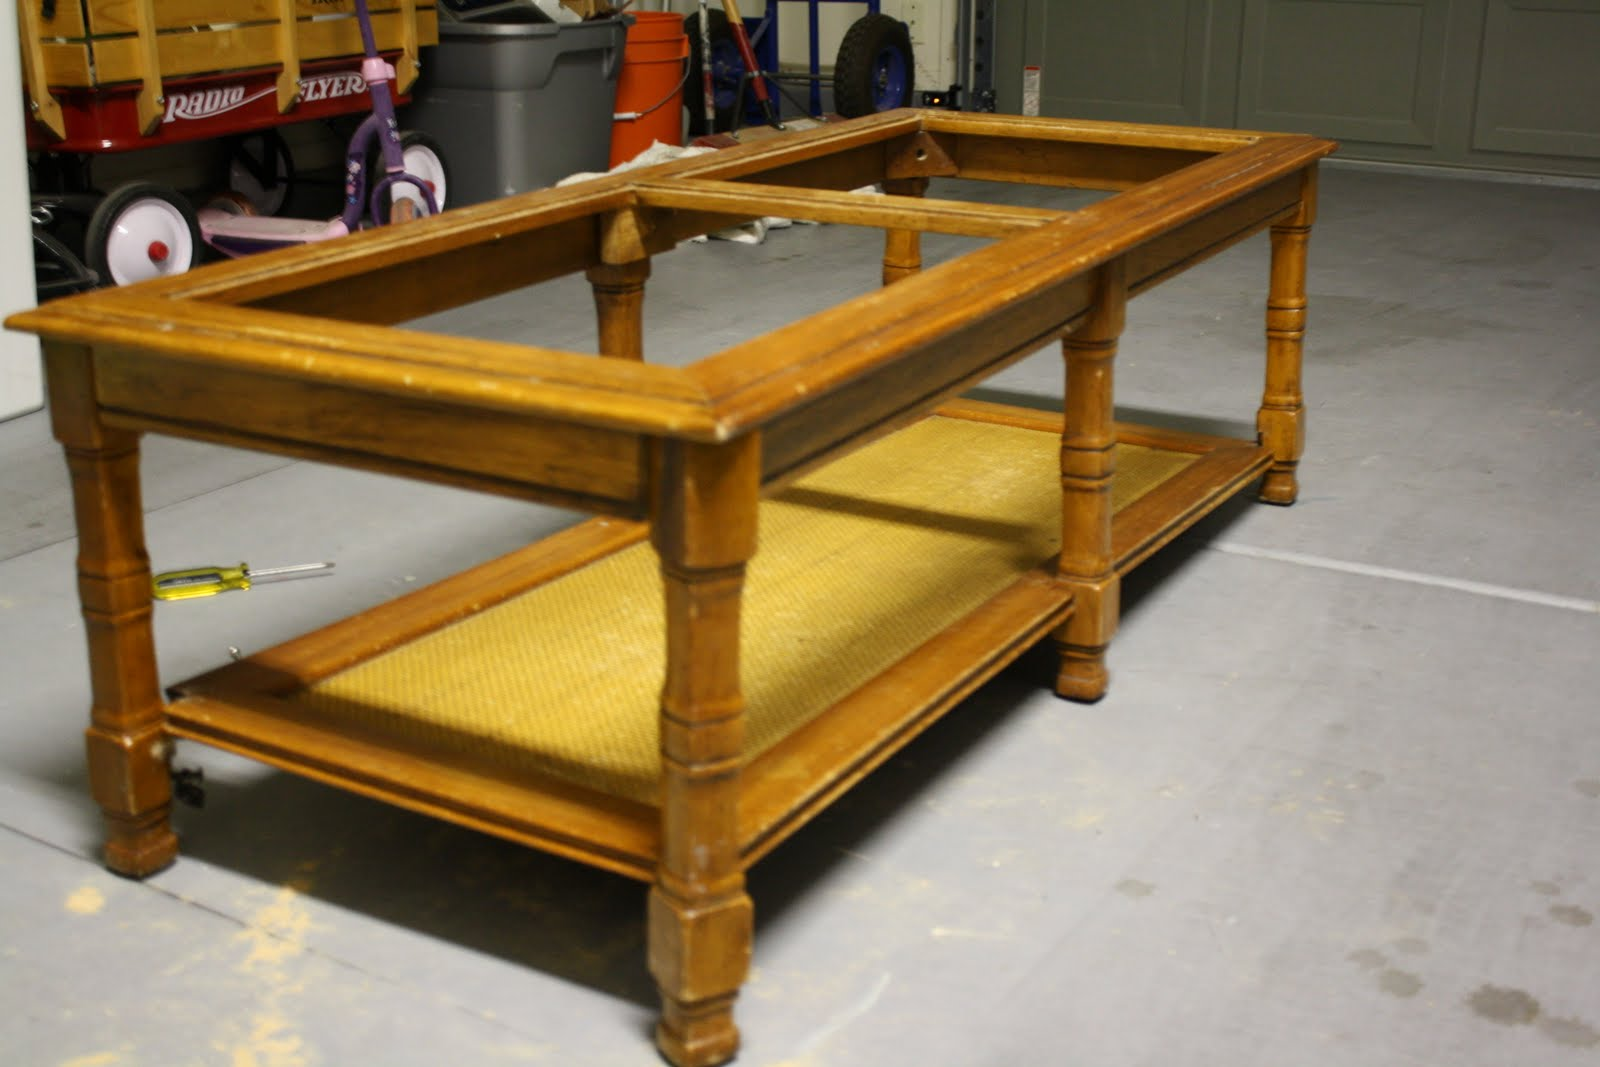 Wonderful Furniture Redo: Coffee Table To Bench